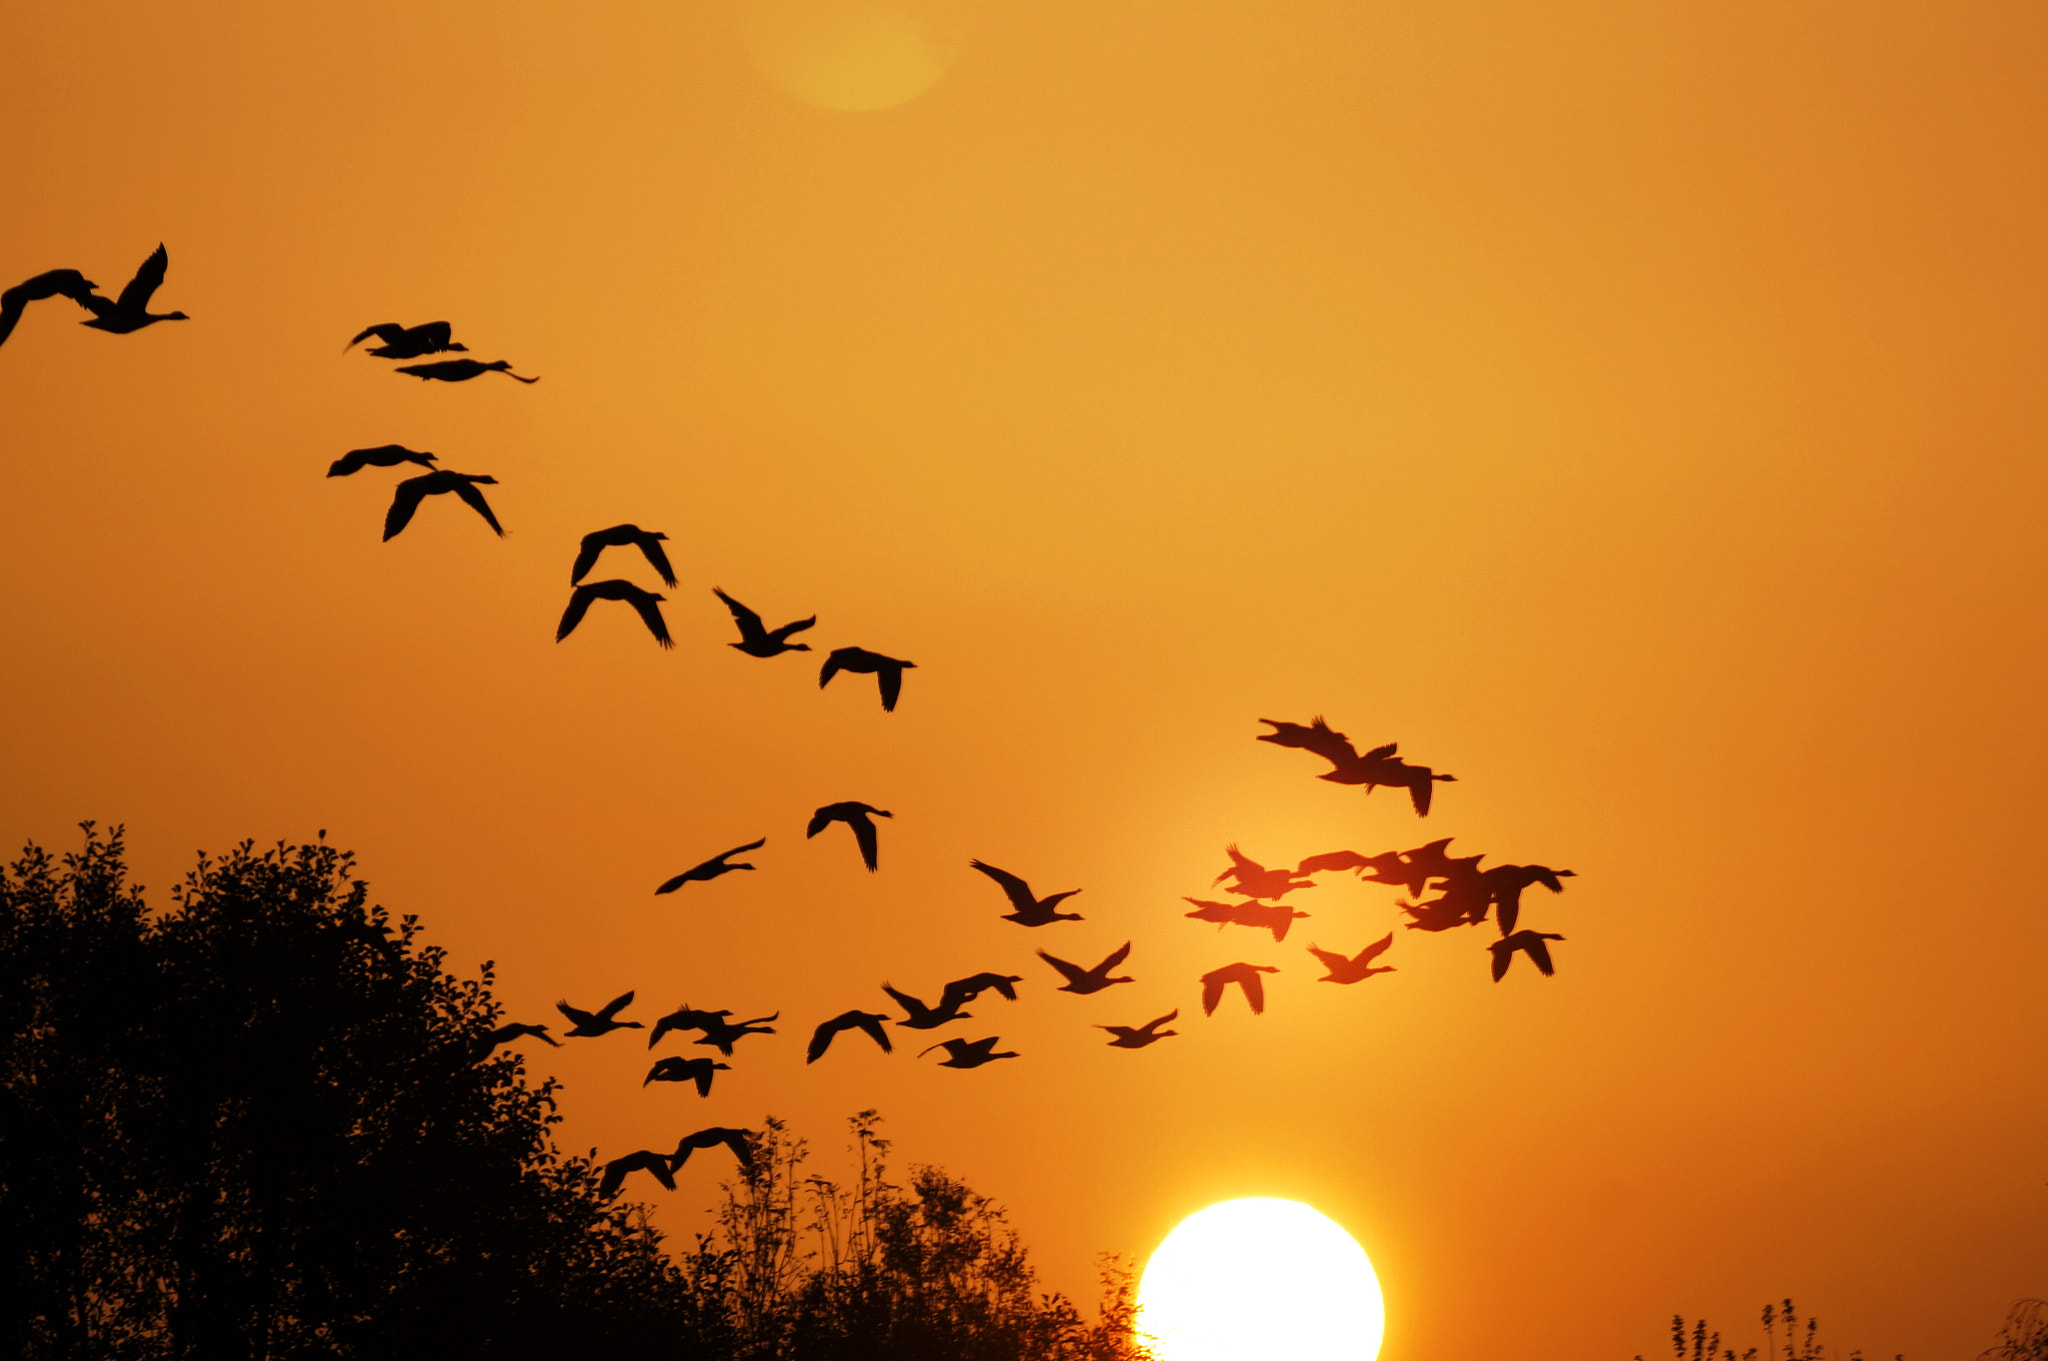 Photograph Flug in den Sonnenuntergang by Ralf Bessoth on 500px